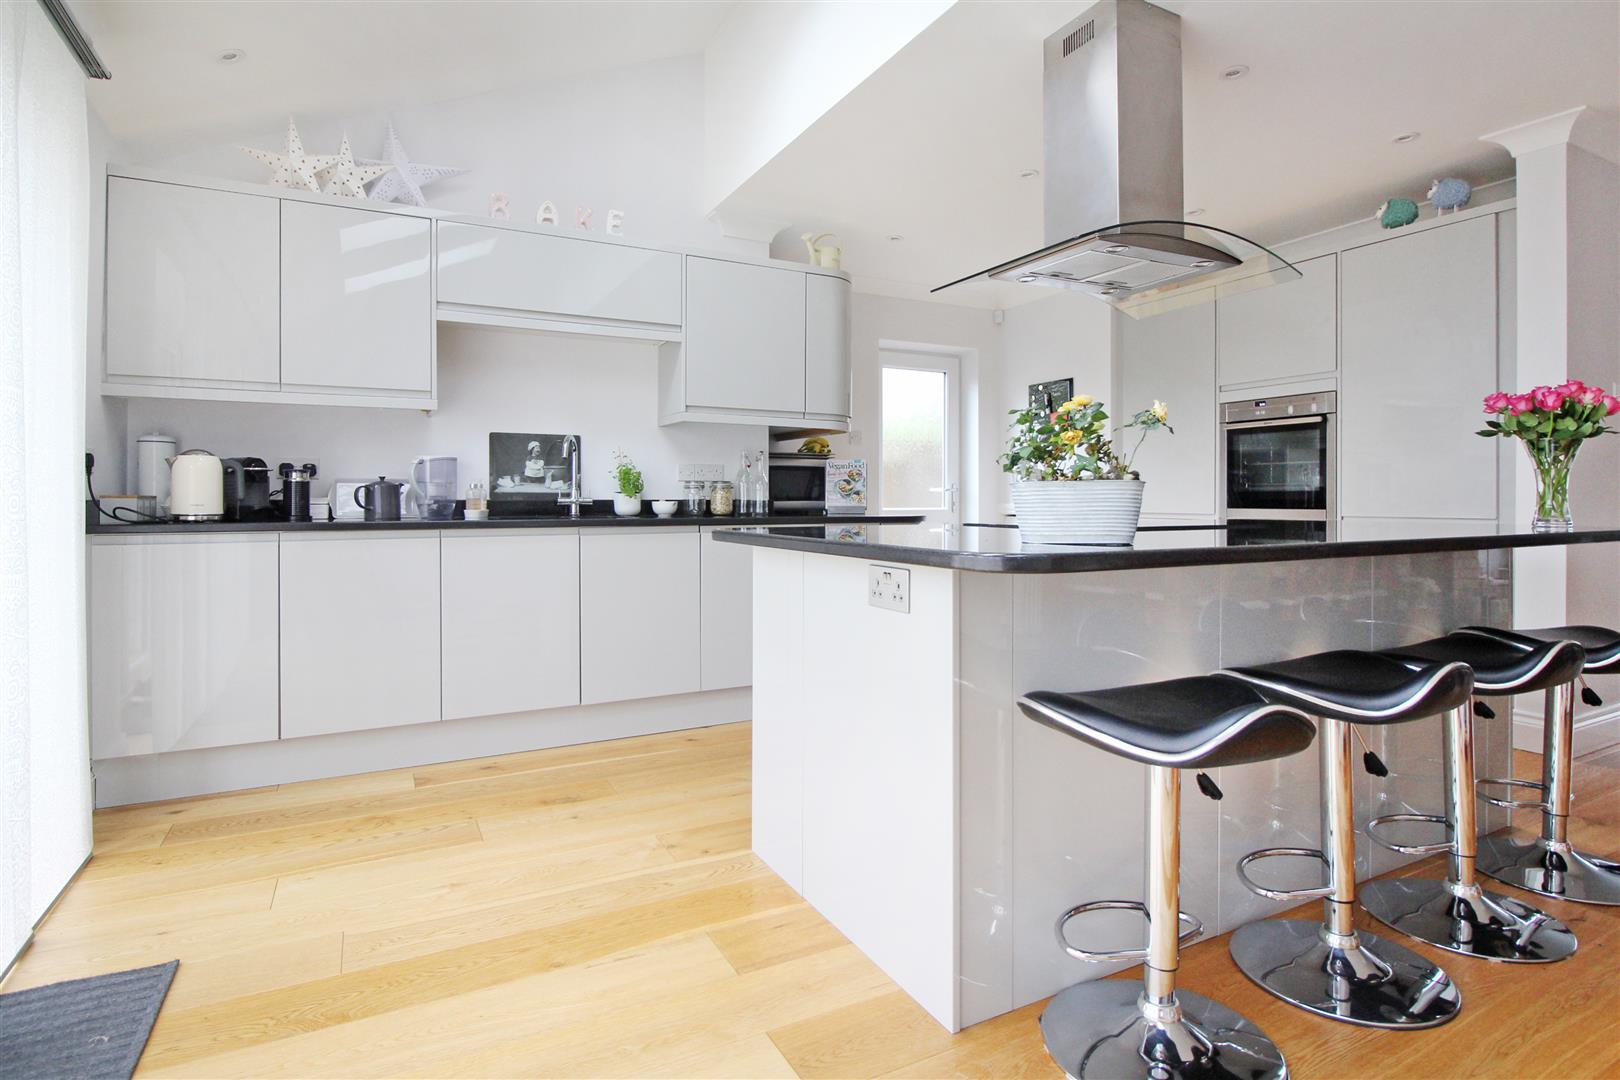 Did you know a new kitchen can add 4% more value to your home ?